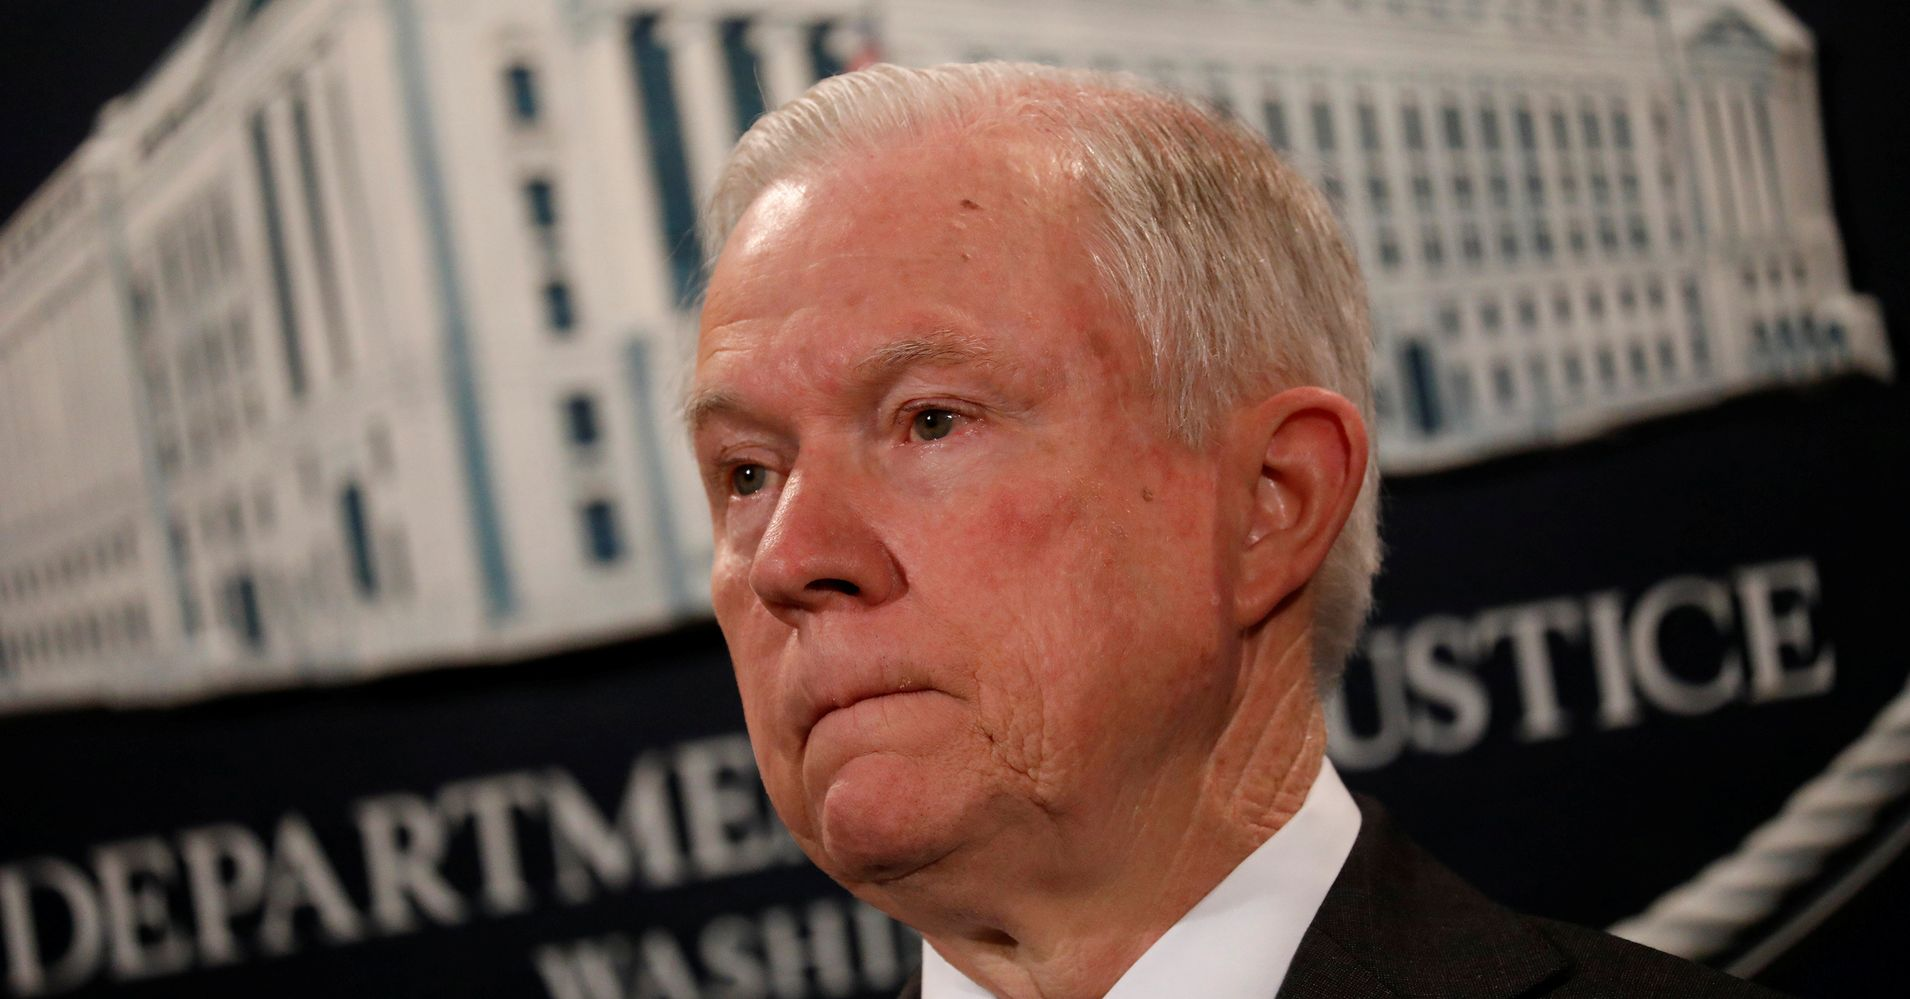 Jeff Sessions Brushes Off Resignation Rumors After Scathing Trump Interview